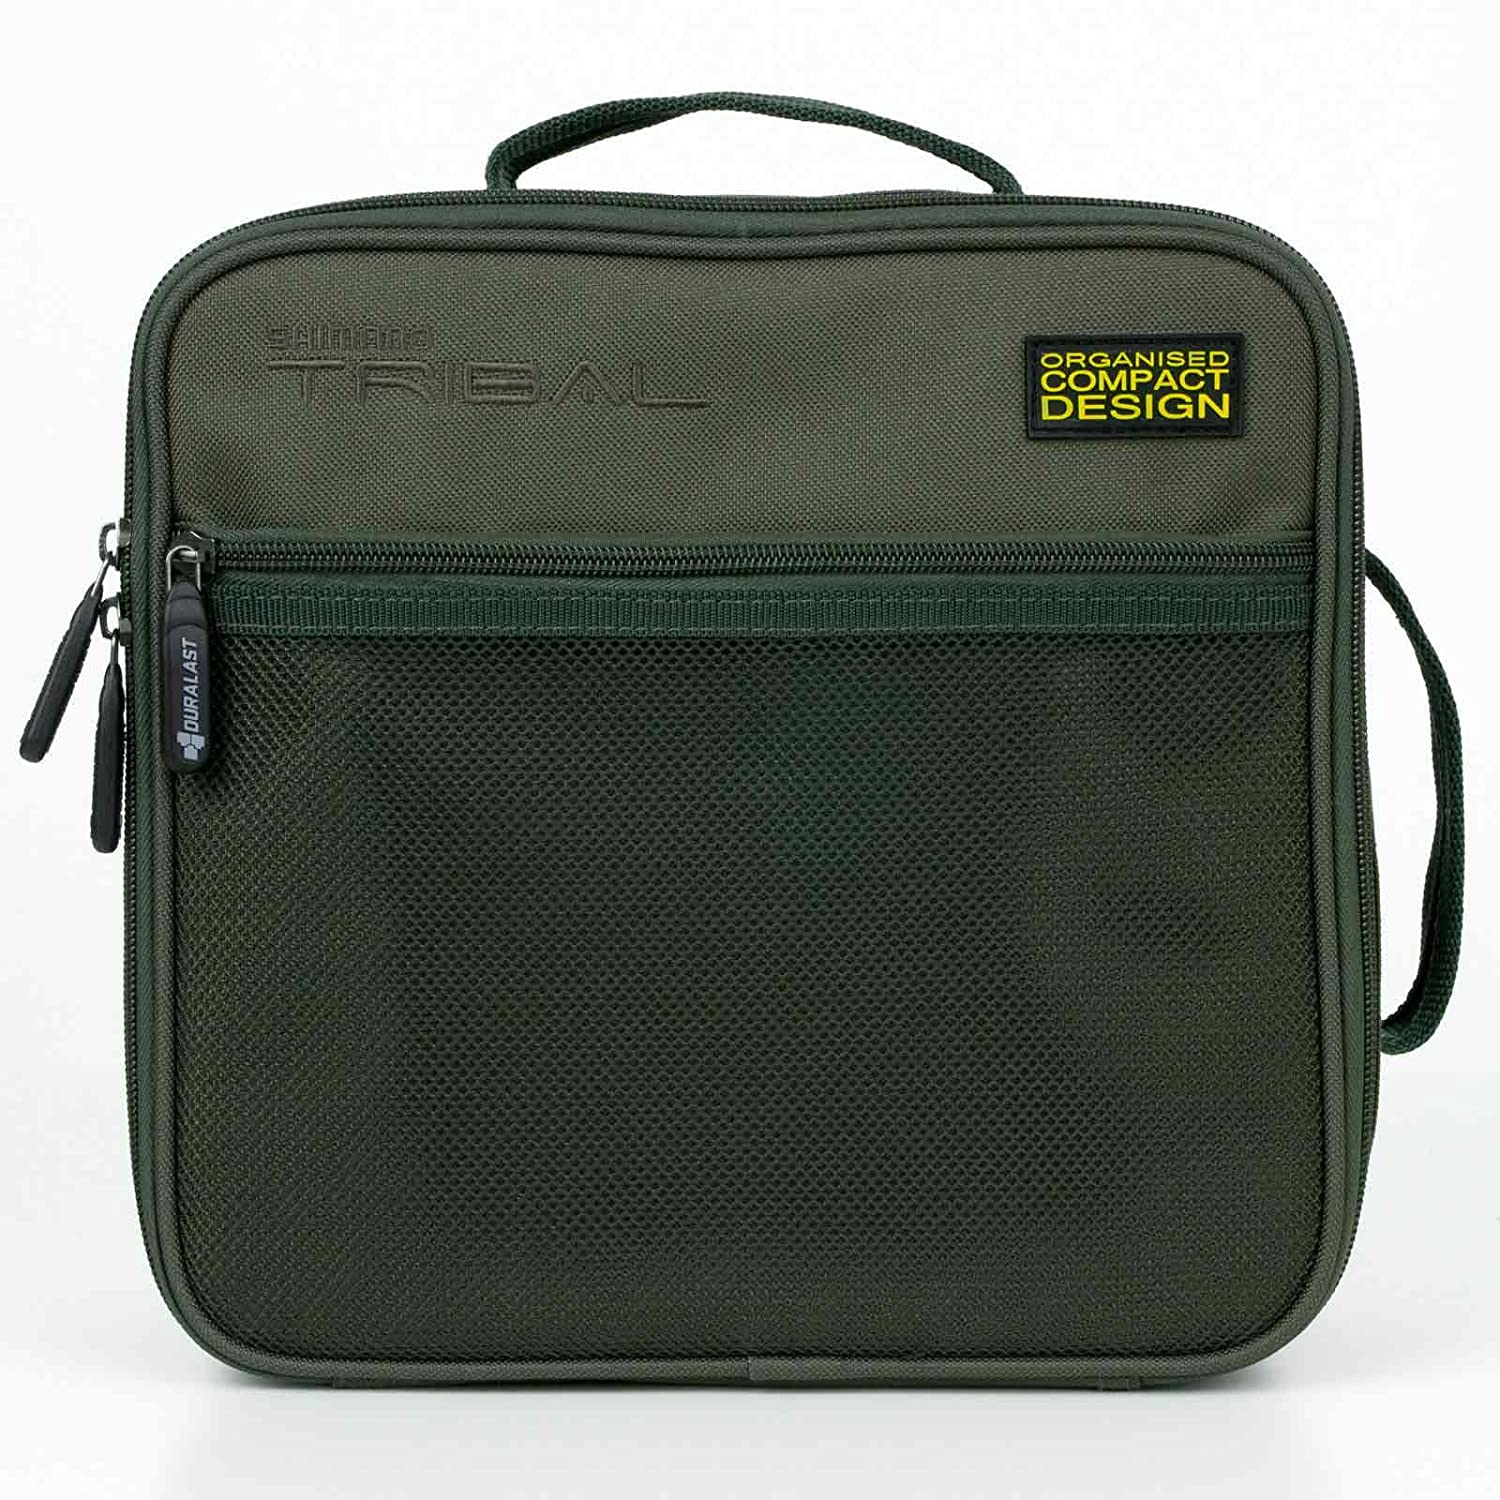 Shimano Tasche Tribal 1//1 Accessory Case Large